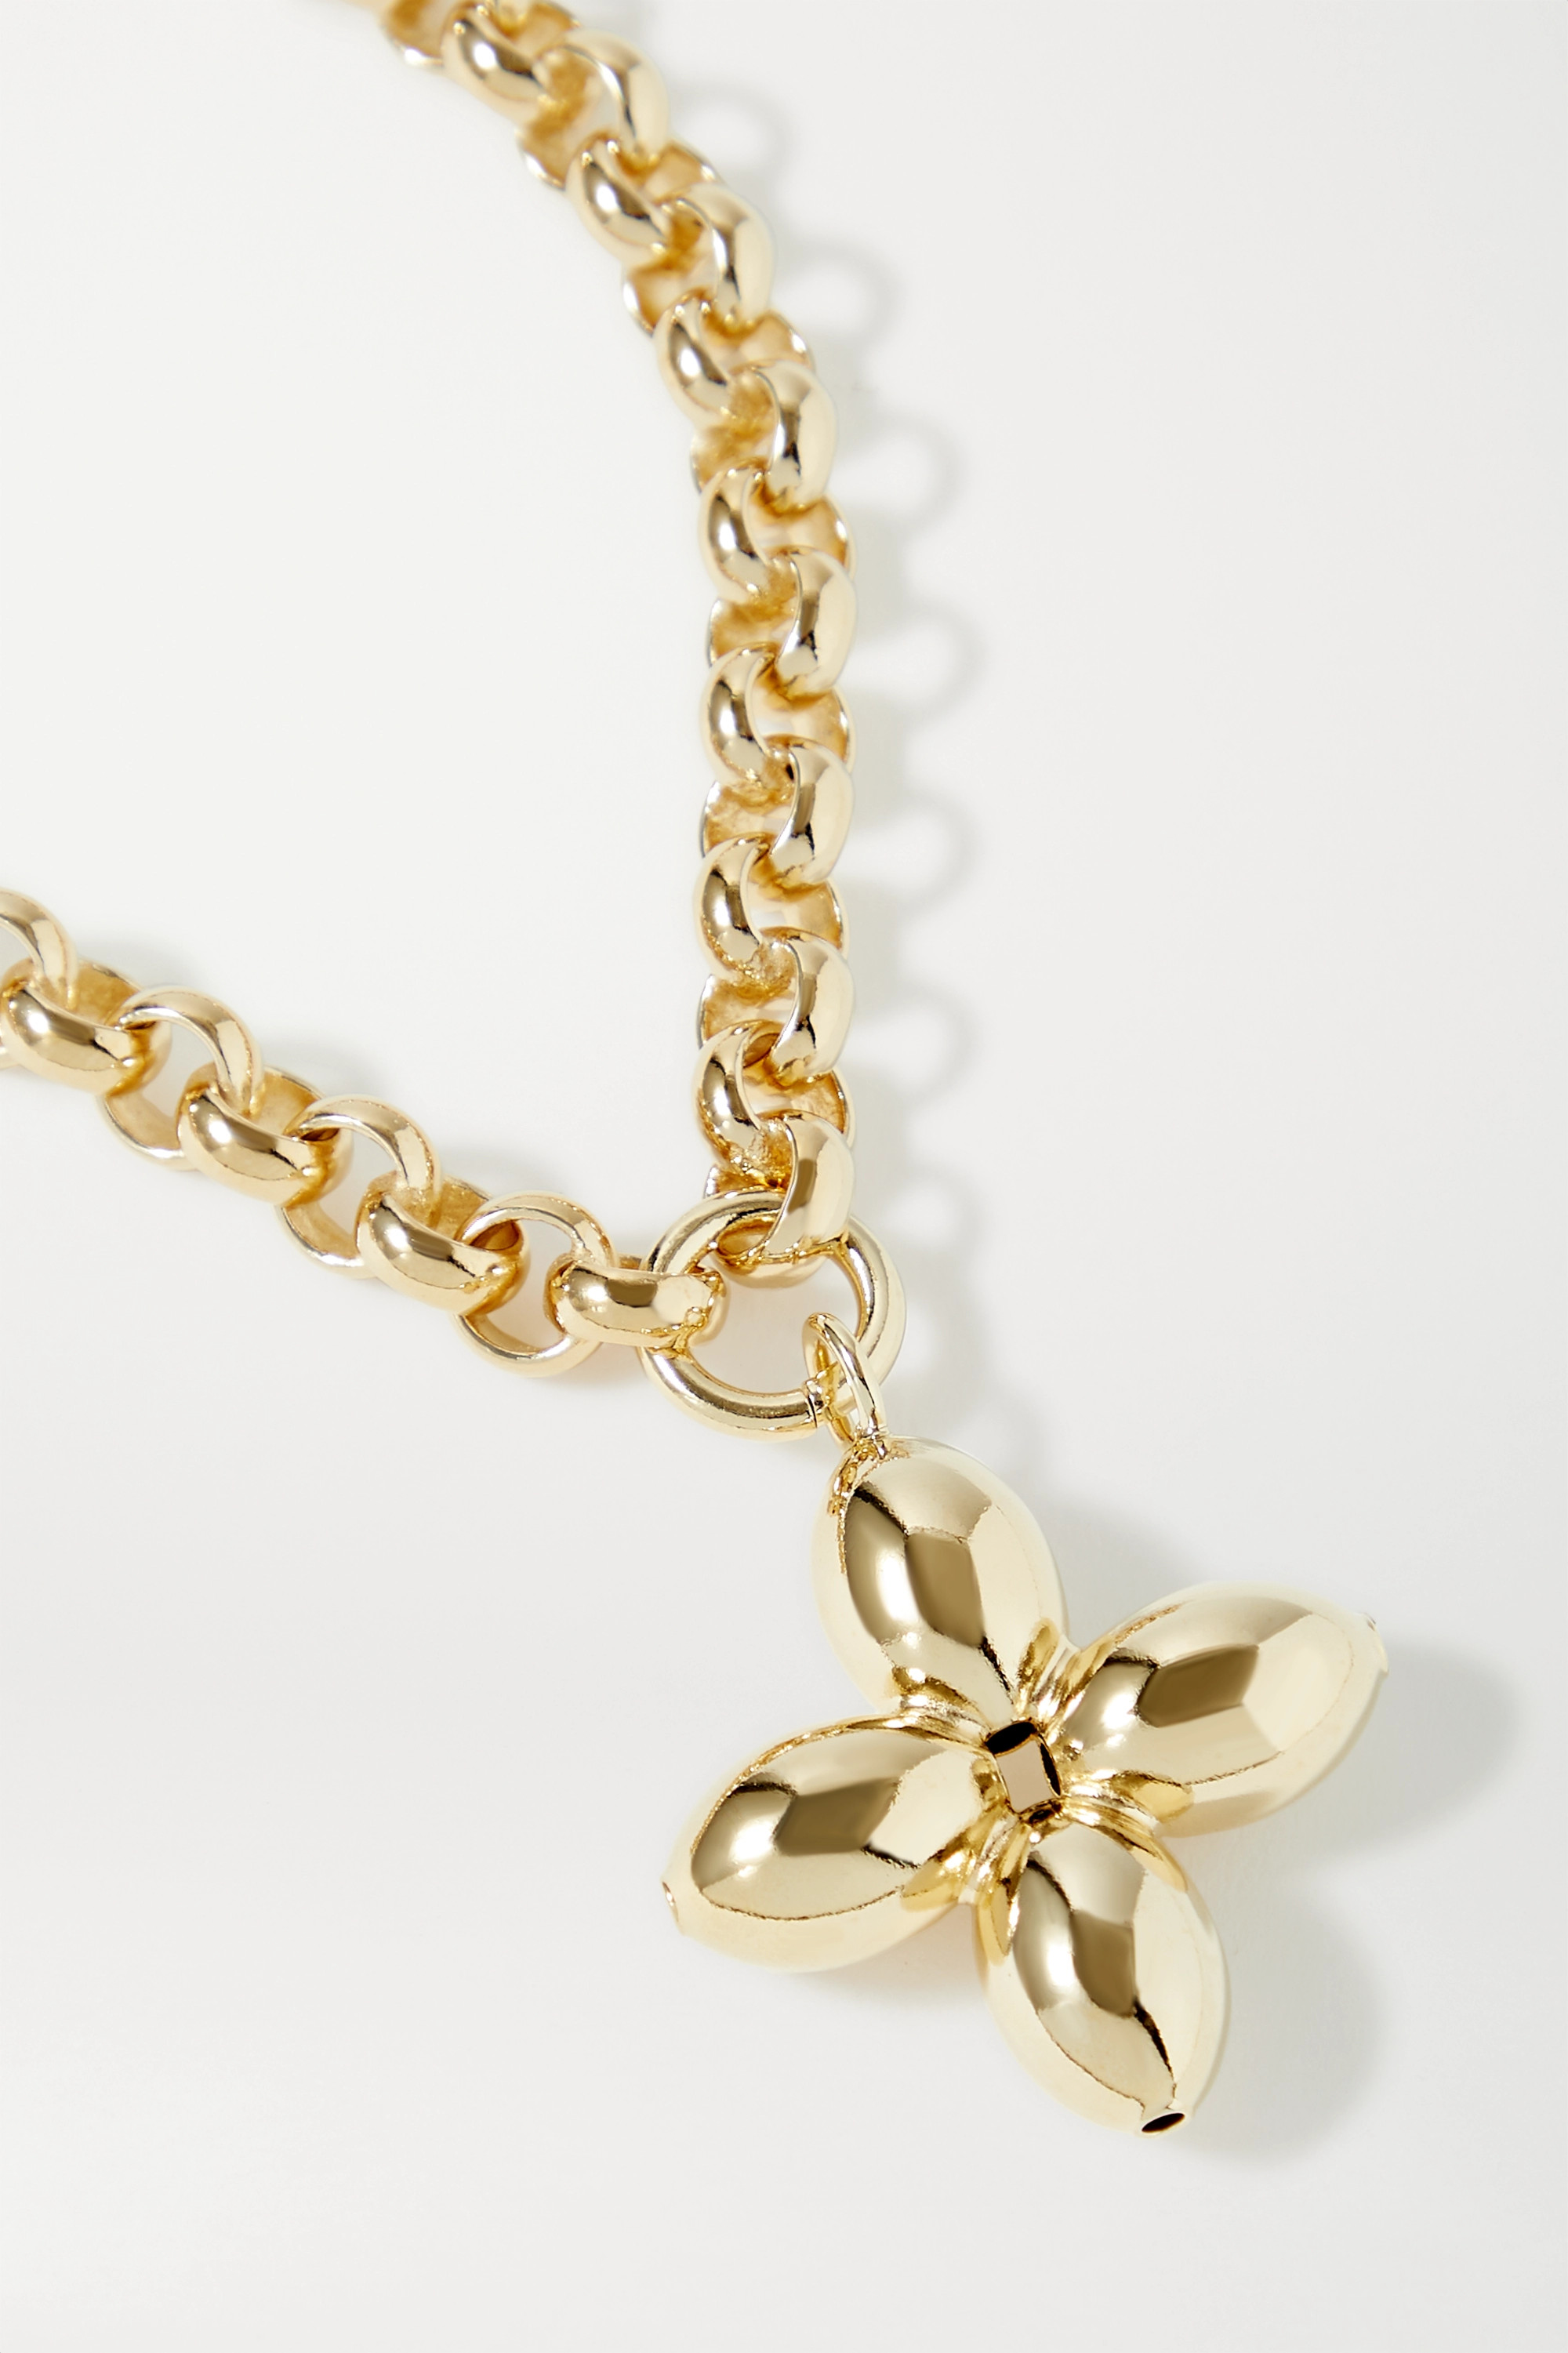 Laura Lombardi Santina gold-plated necklace